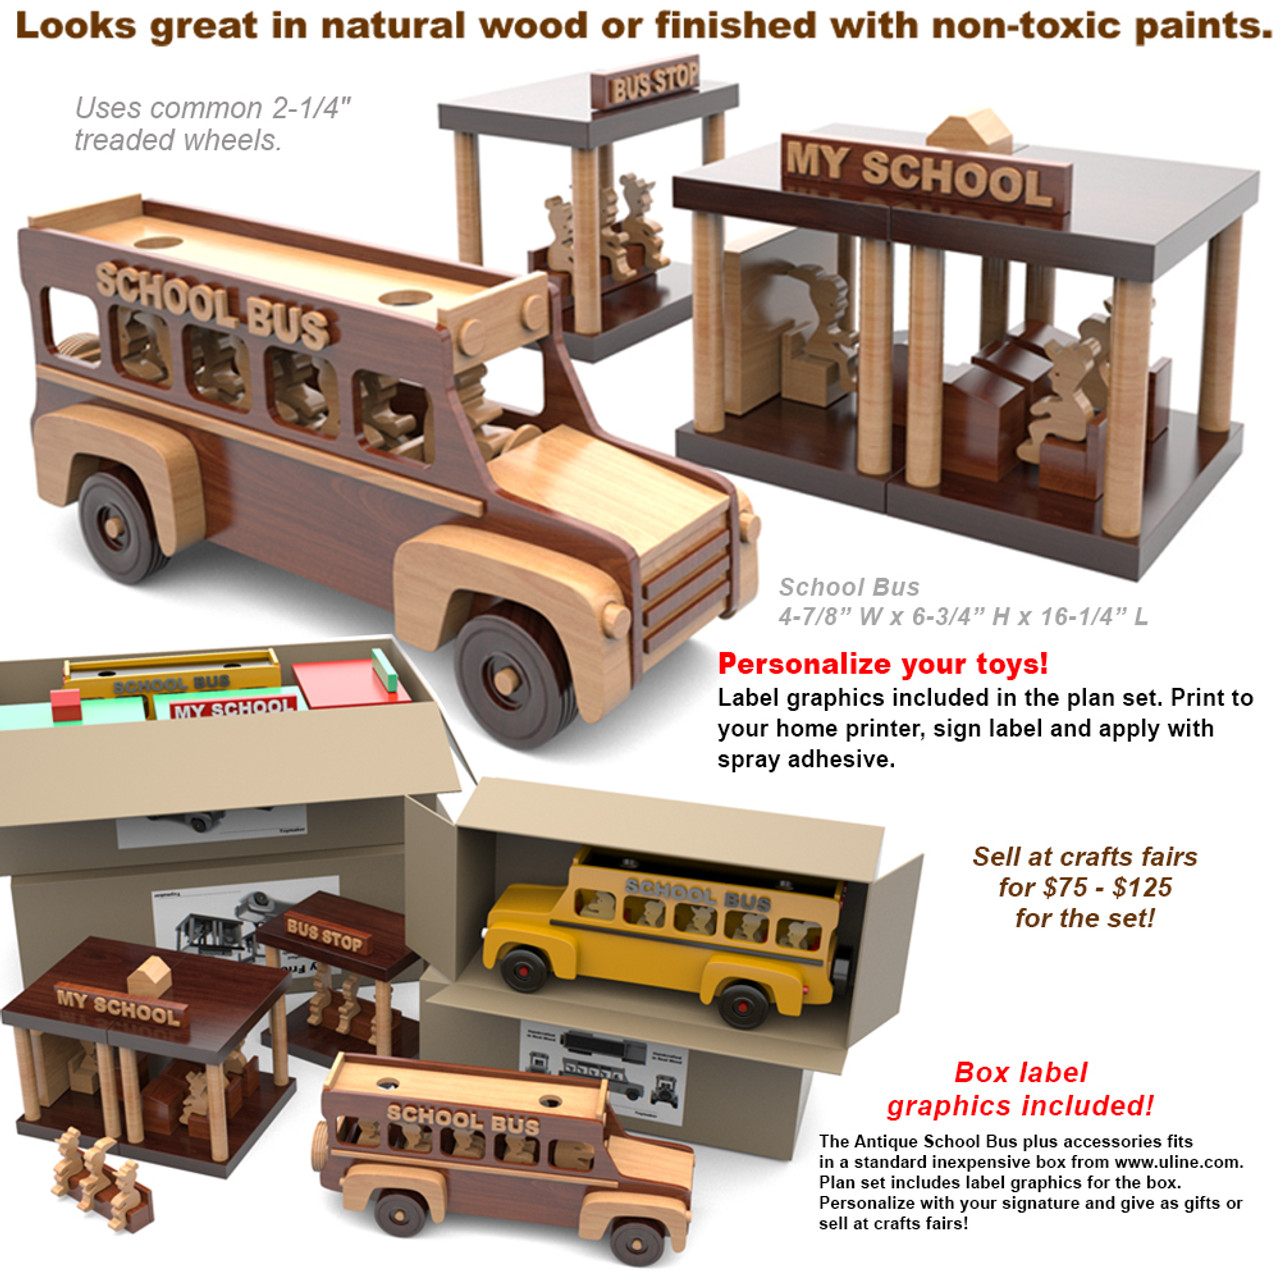 super simple my friendly school bus wood toy plans (pdf download)